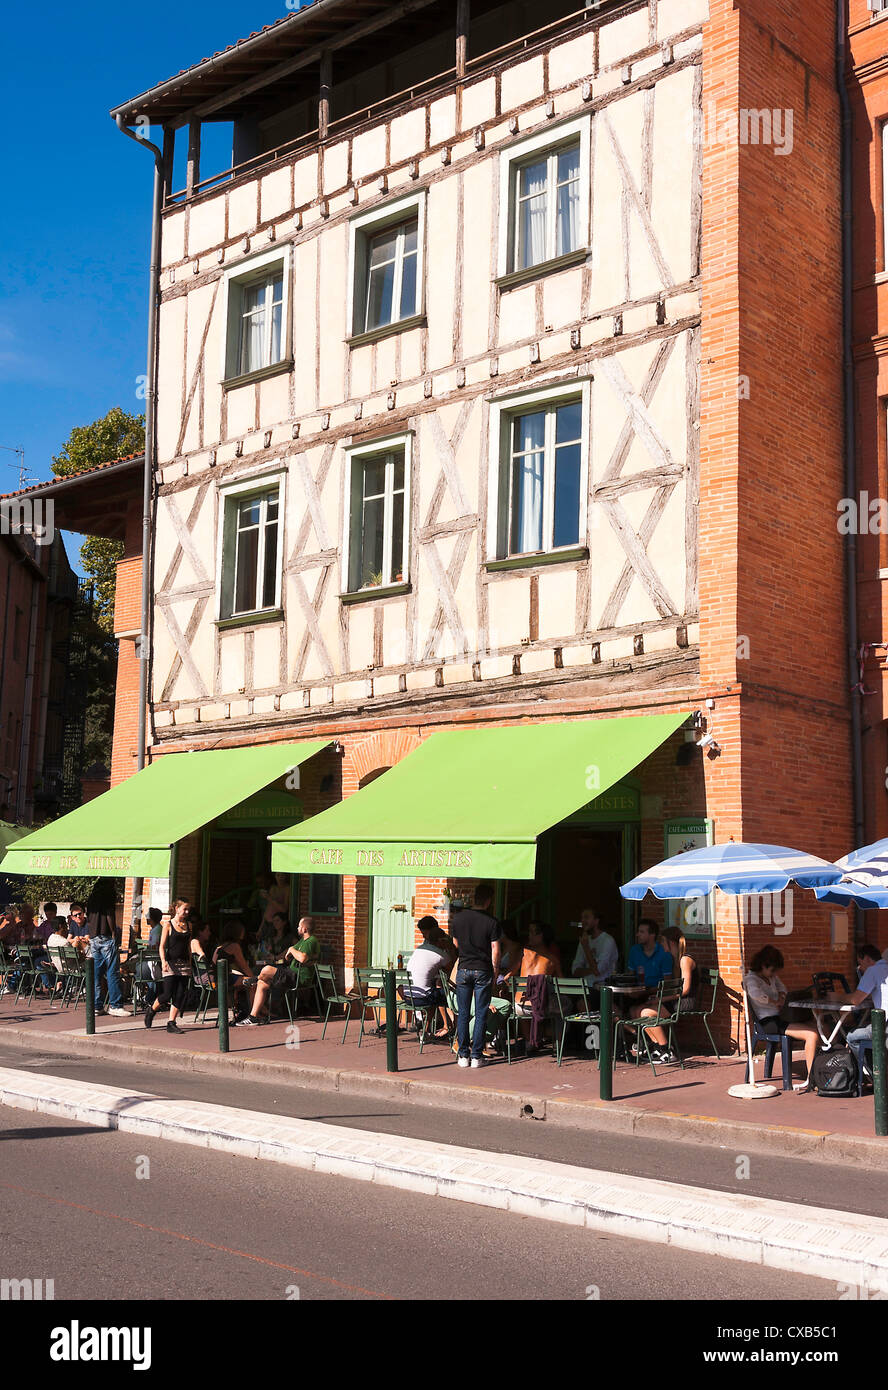 Cafe des Artistes in Place de la Daurade Toulouse Haute-Garonne Midi-Pyrenees France Stock Photo